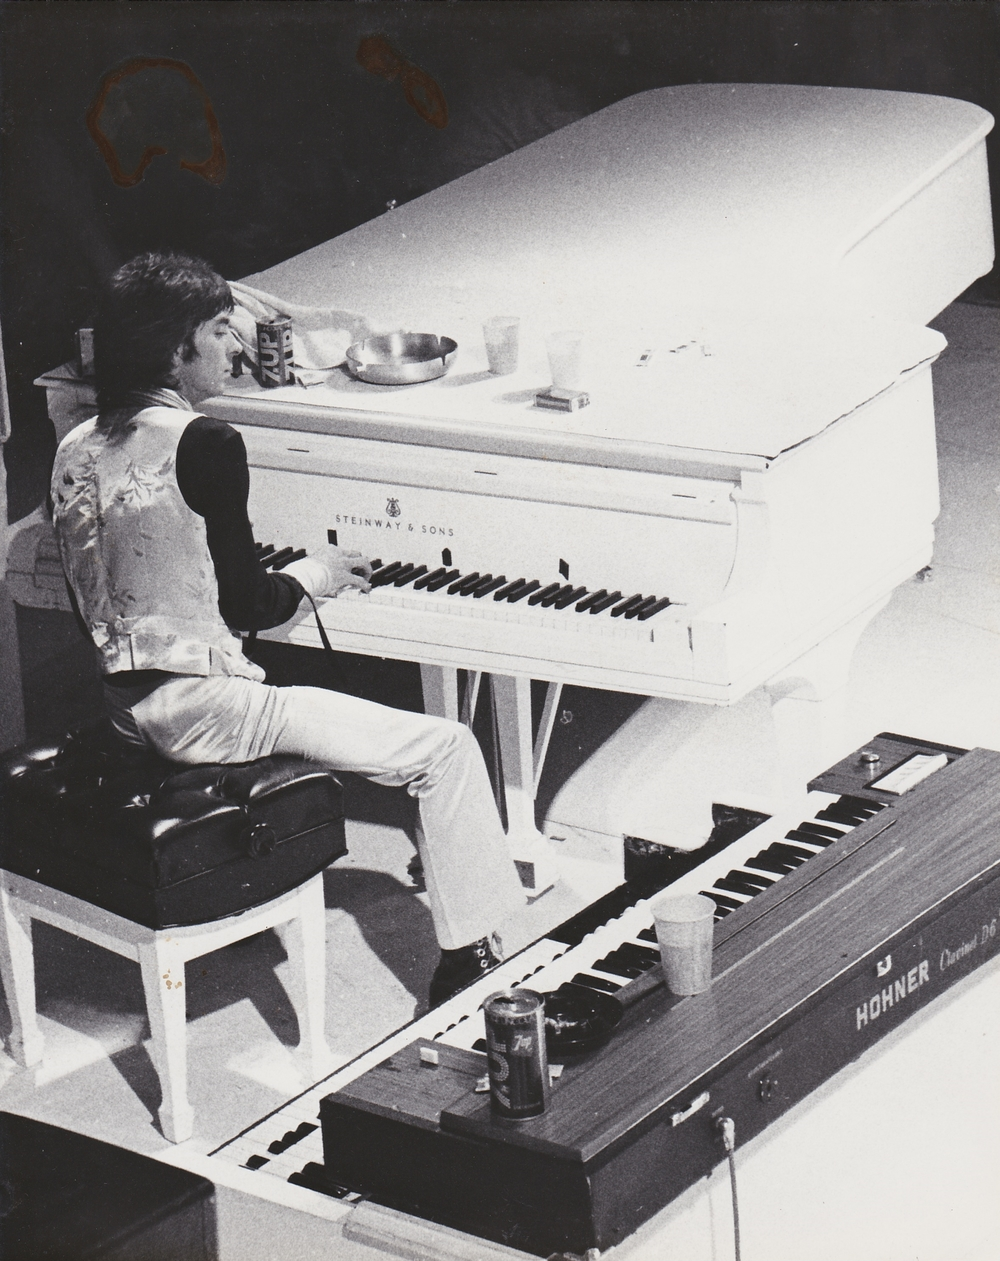 Mac at piano BW.jpg